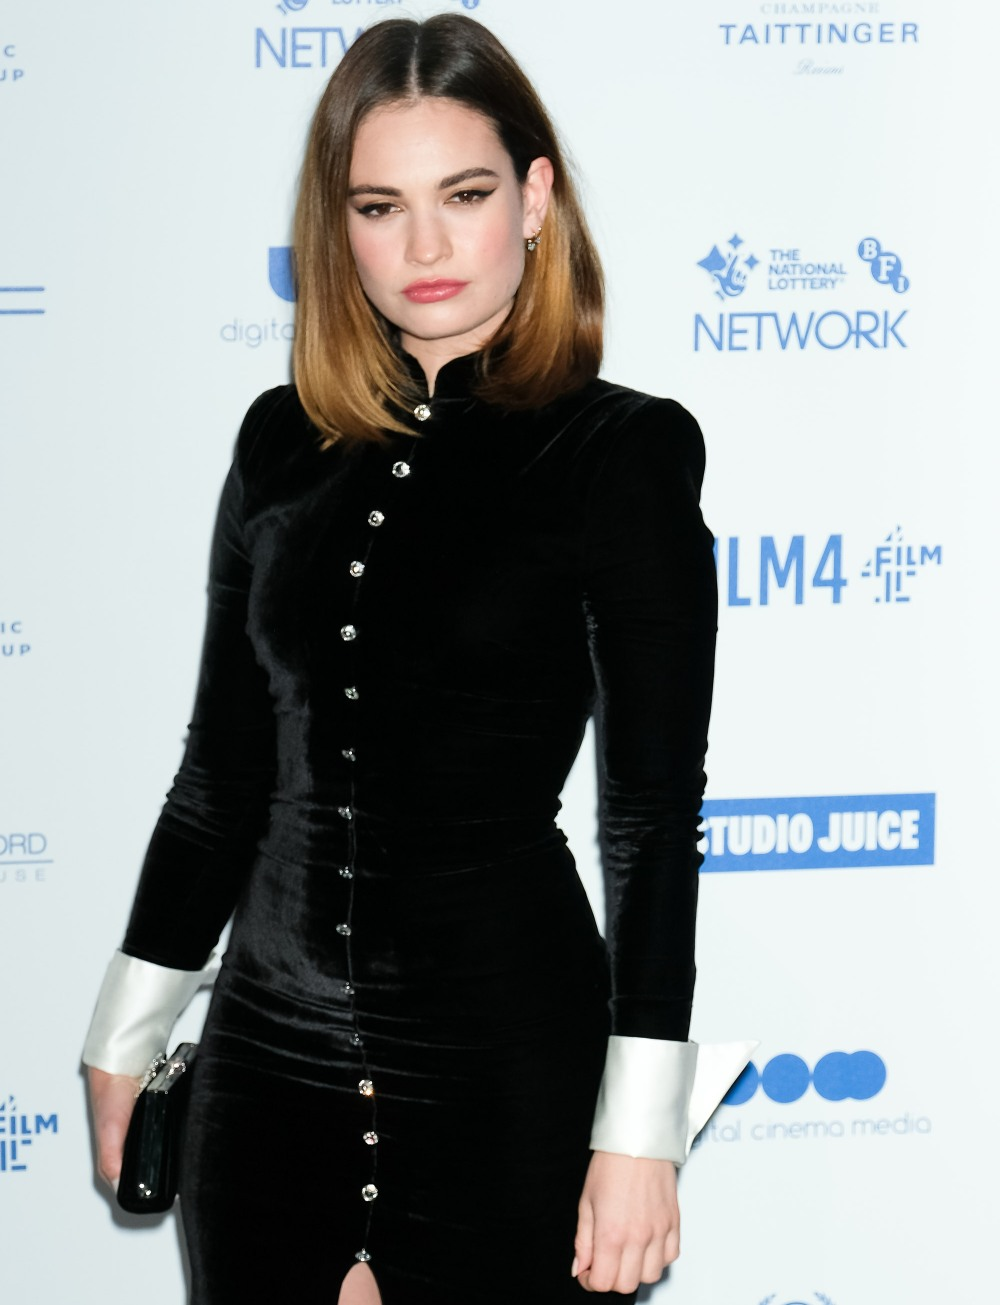 Lily James attends the 22nd British Independent Film Awards on Sunday 1 December 2019